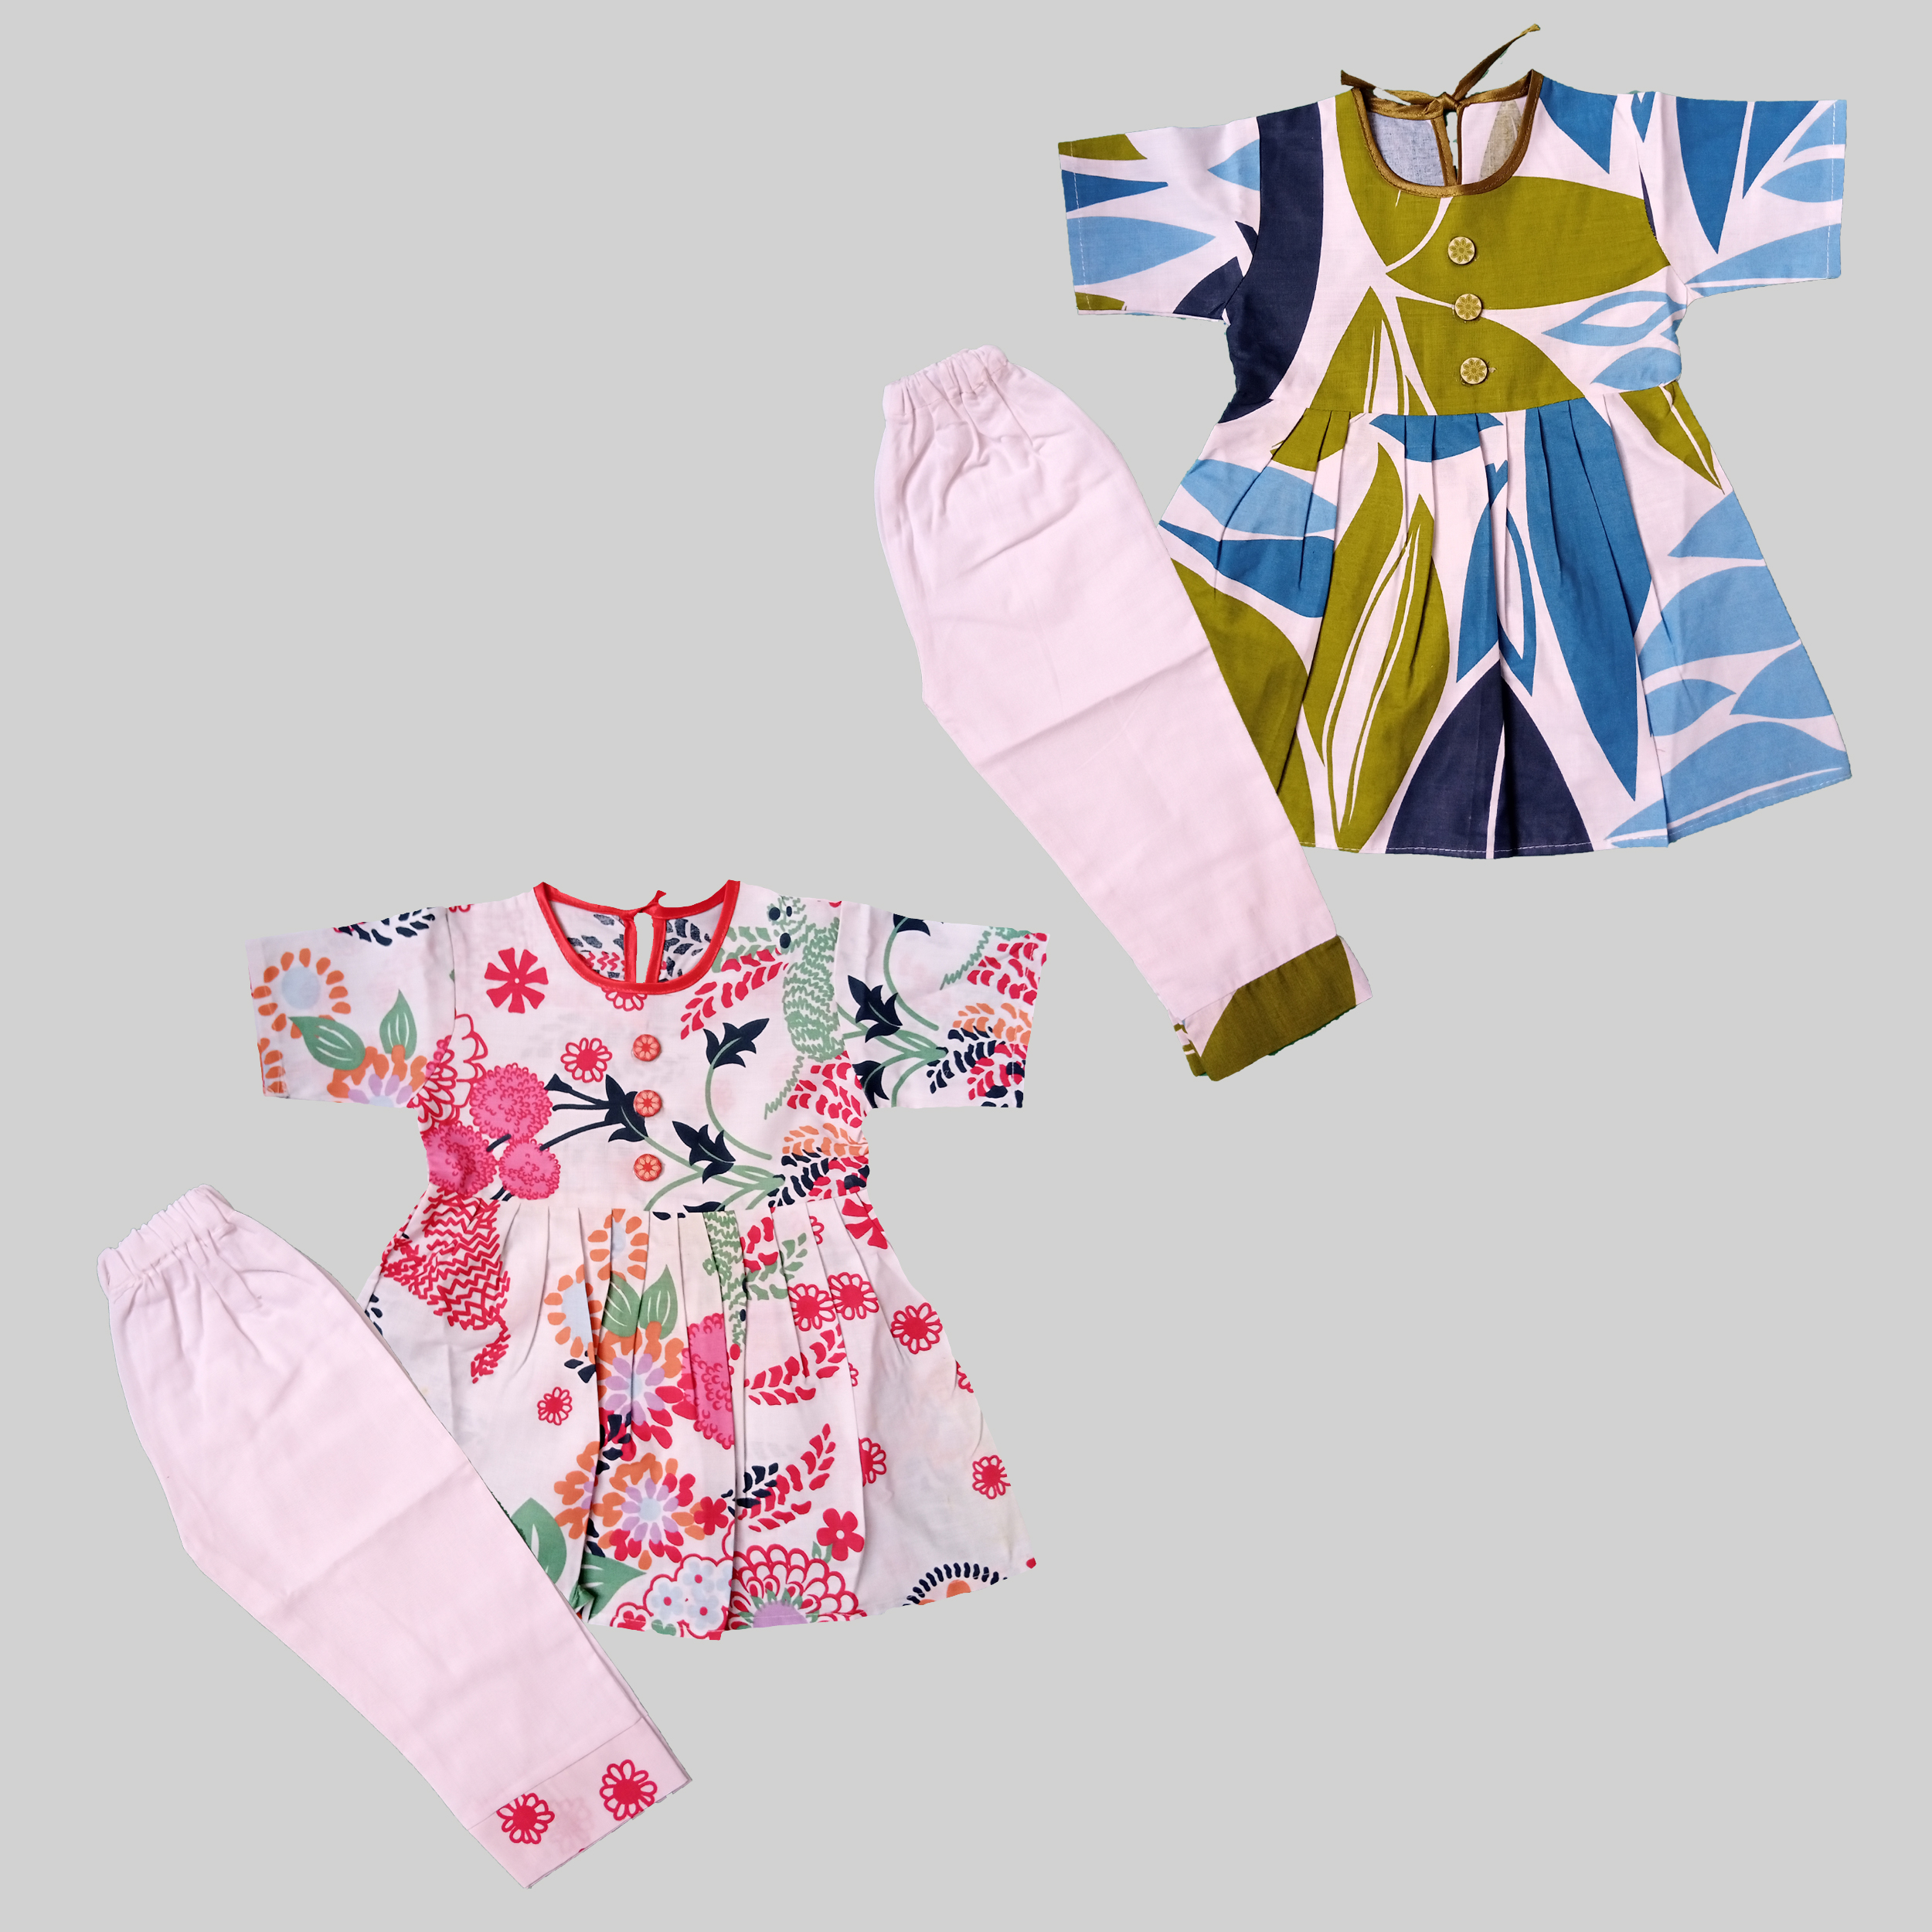 SJ Store & Collection - Pack of 2 - Half Sleeves - Summer Multicolored Cotton Printed Frocks with Tights for Baby Girls (New Born to 9 Months)